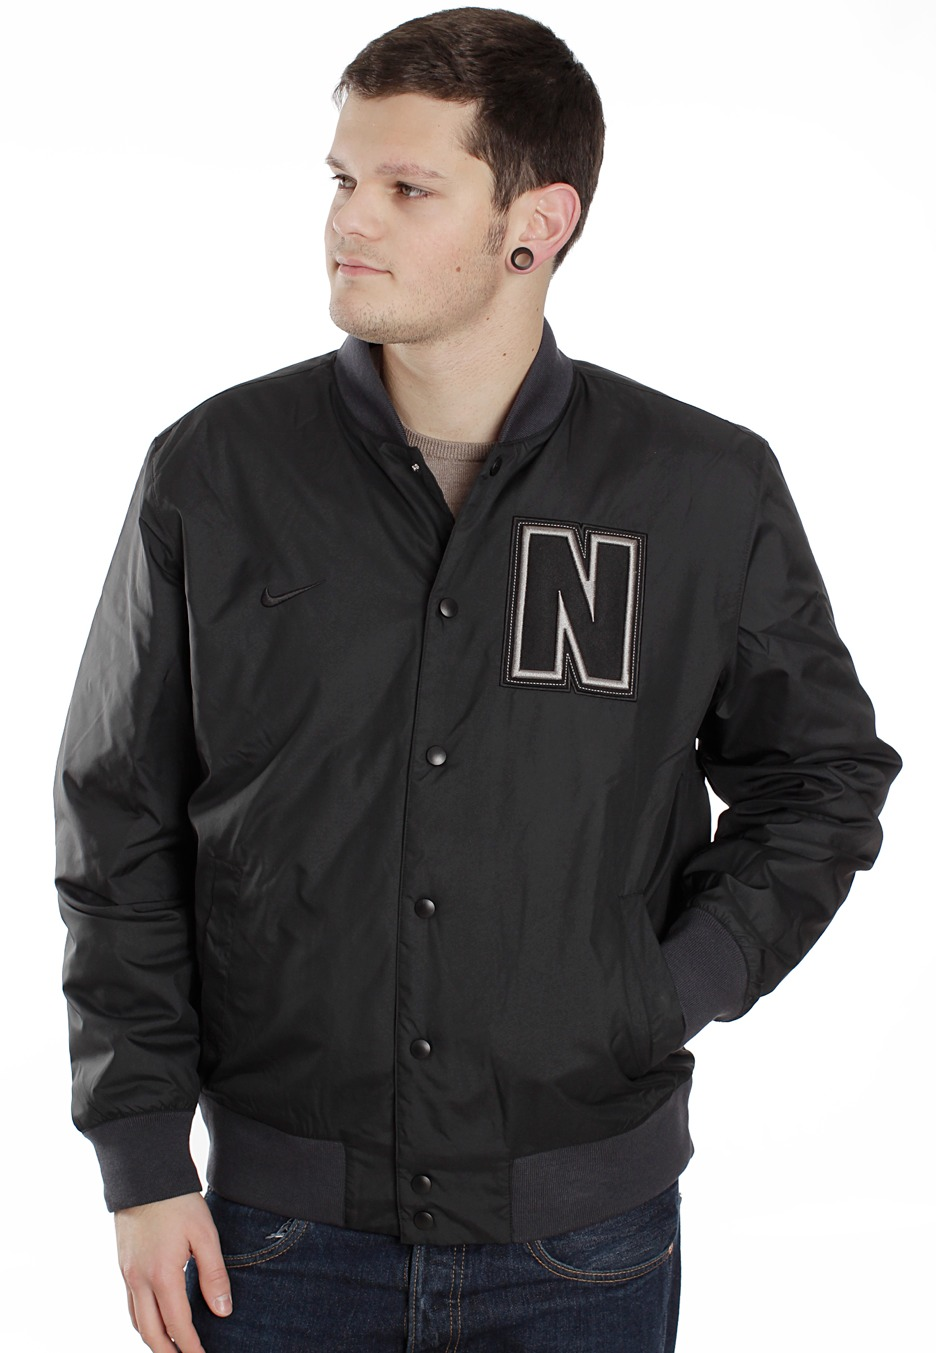 Nike - AD Letterman Black/Black - College Jacket - Streetwear Shop ...